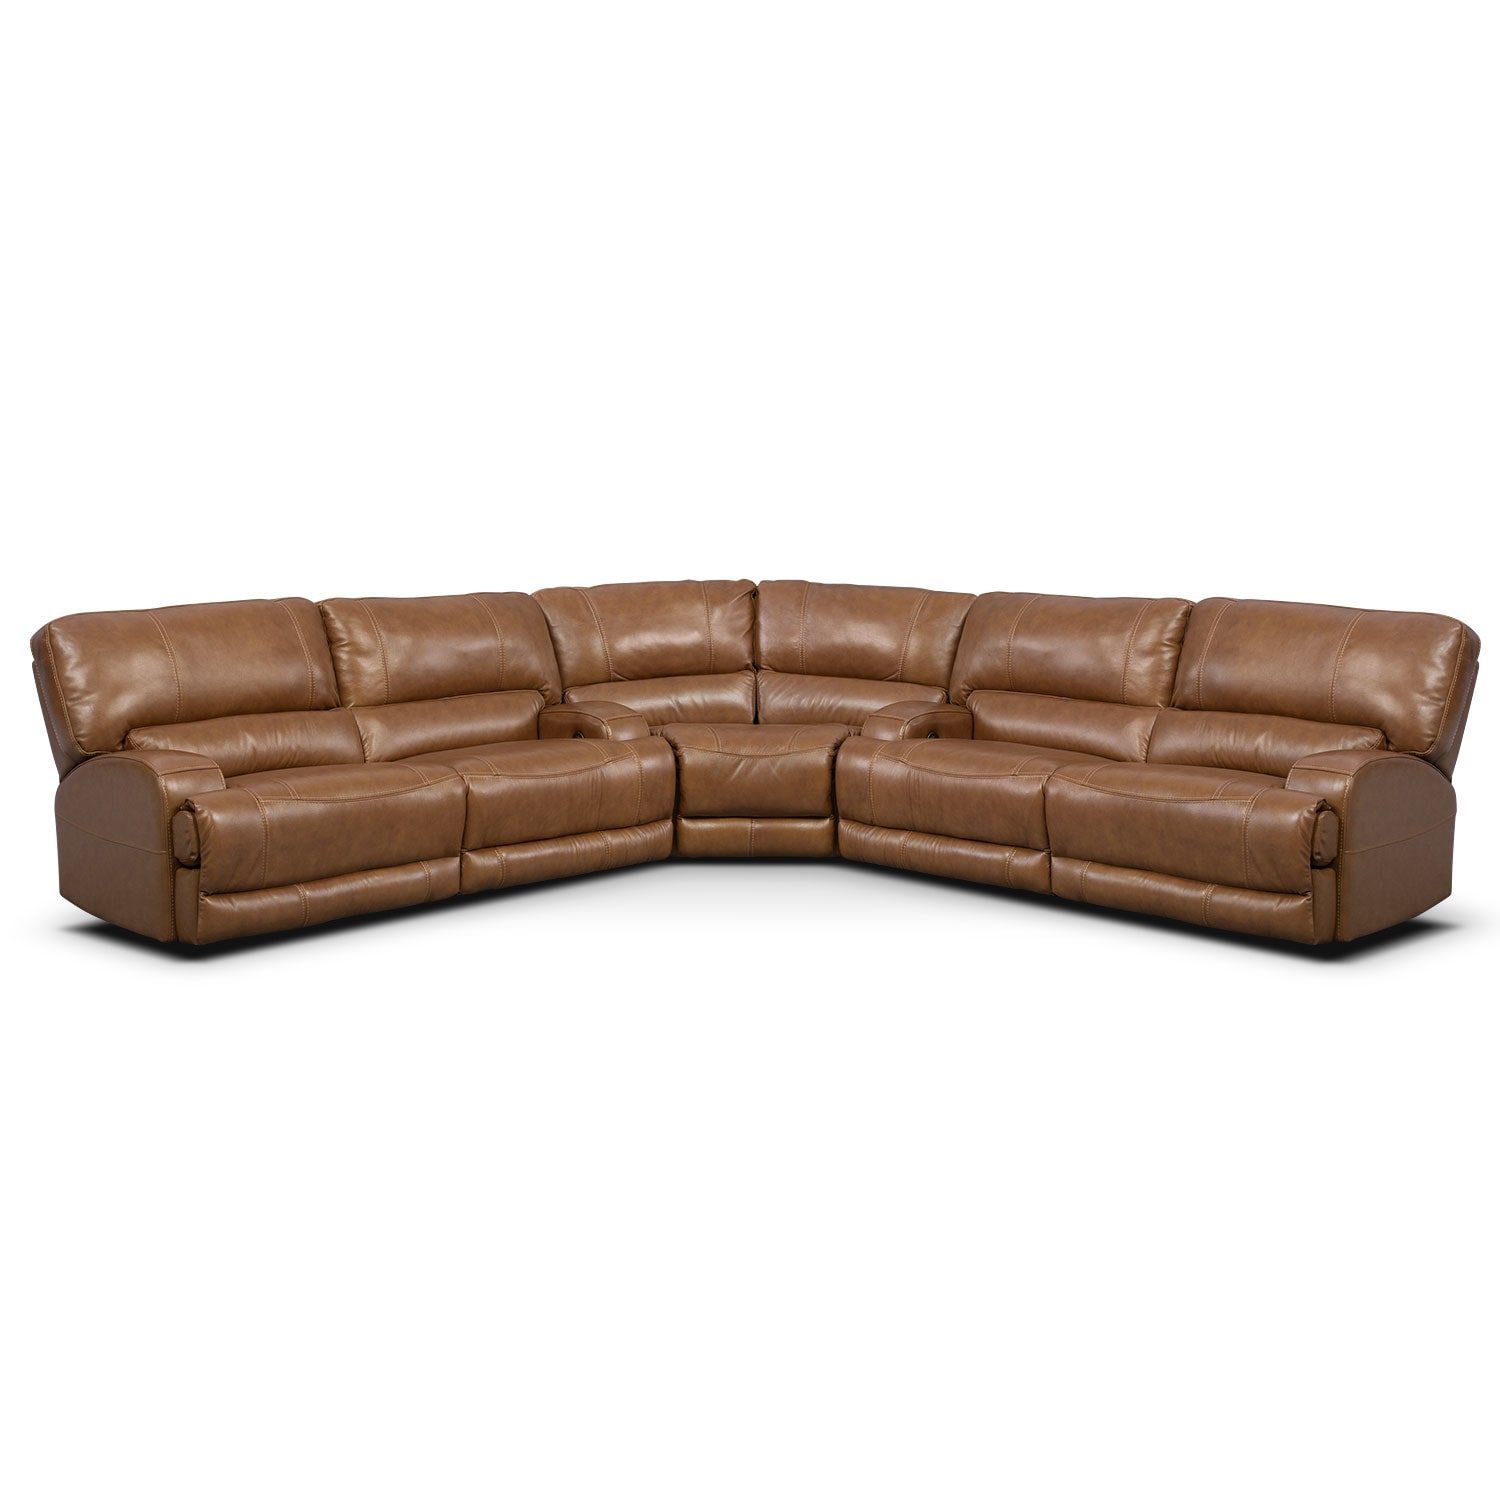 Living Room Furniture - Barton Camel 3 Pc. Power Reclining Sectional